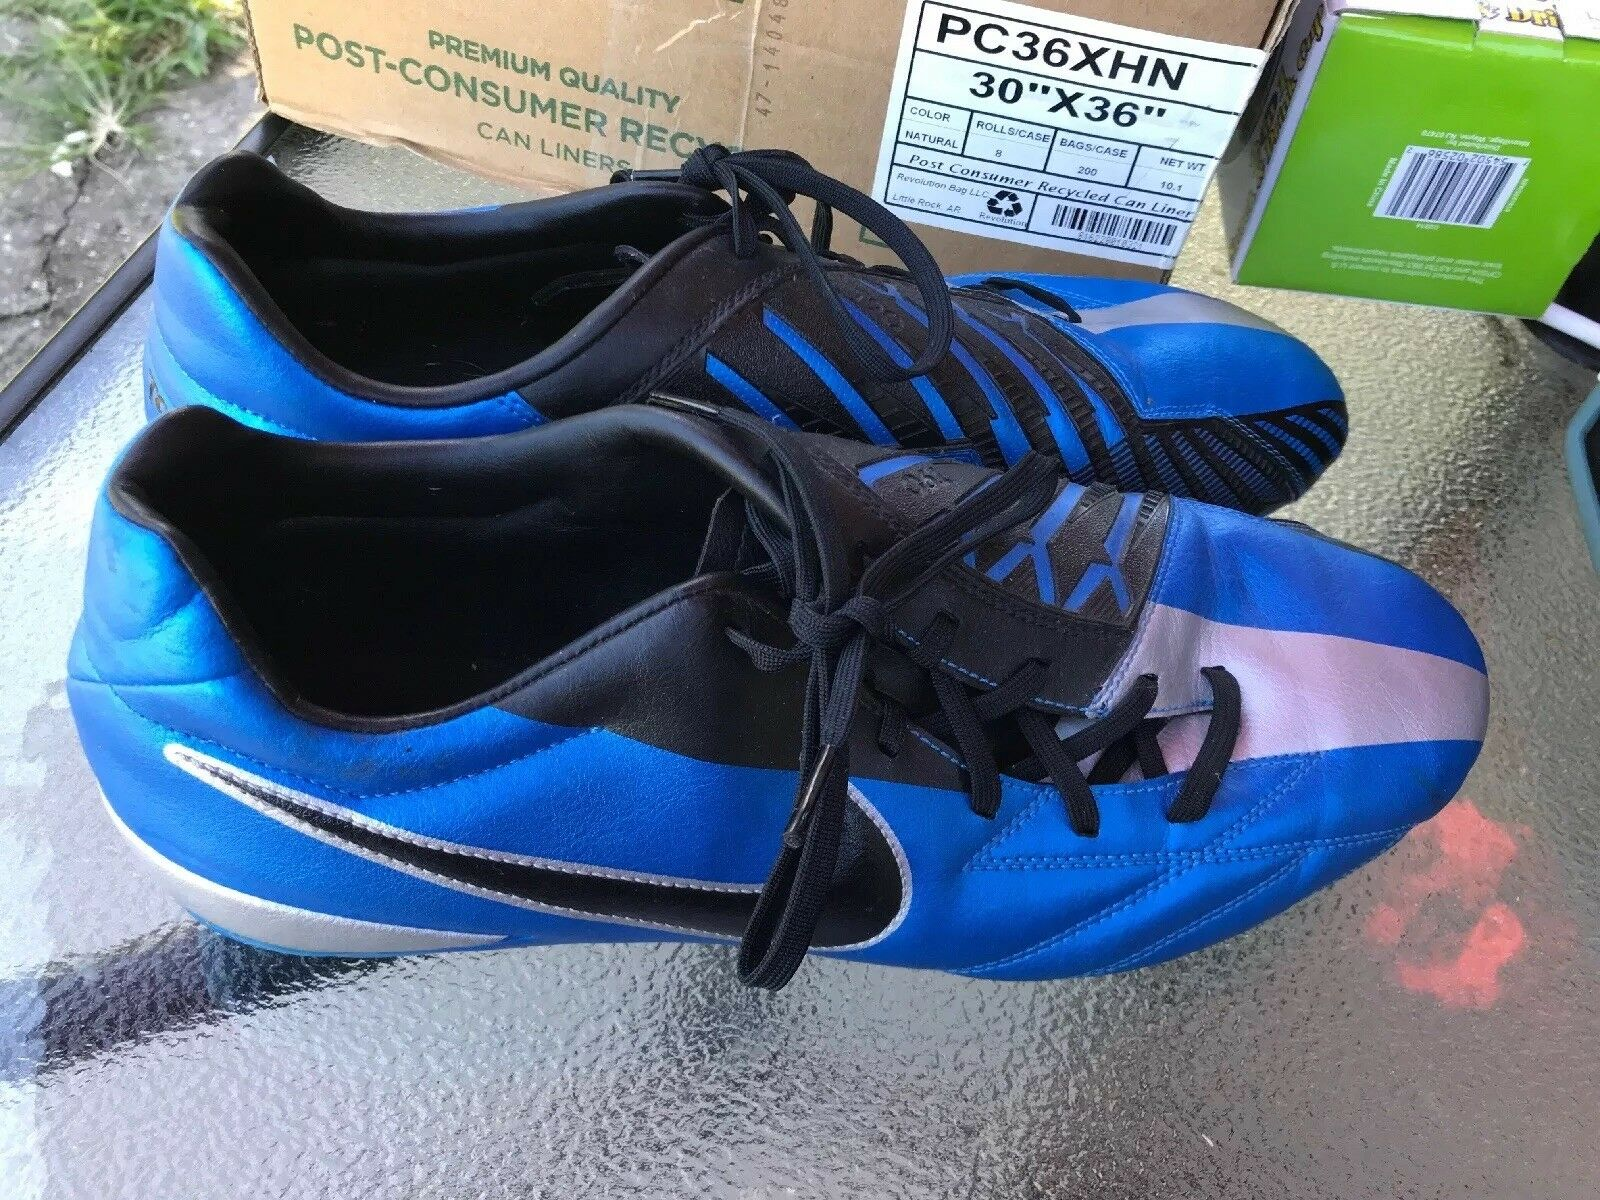 new concept 666ef d4229 NIKE T90 472547 Black Silver Blue Cleats Cleats Cleats Shoes Men s size 13  NIKE